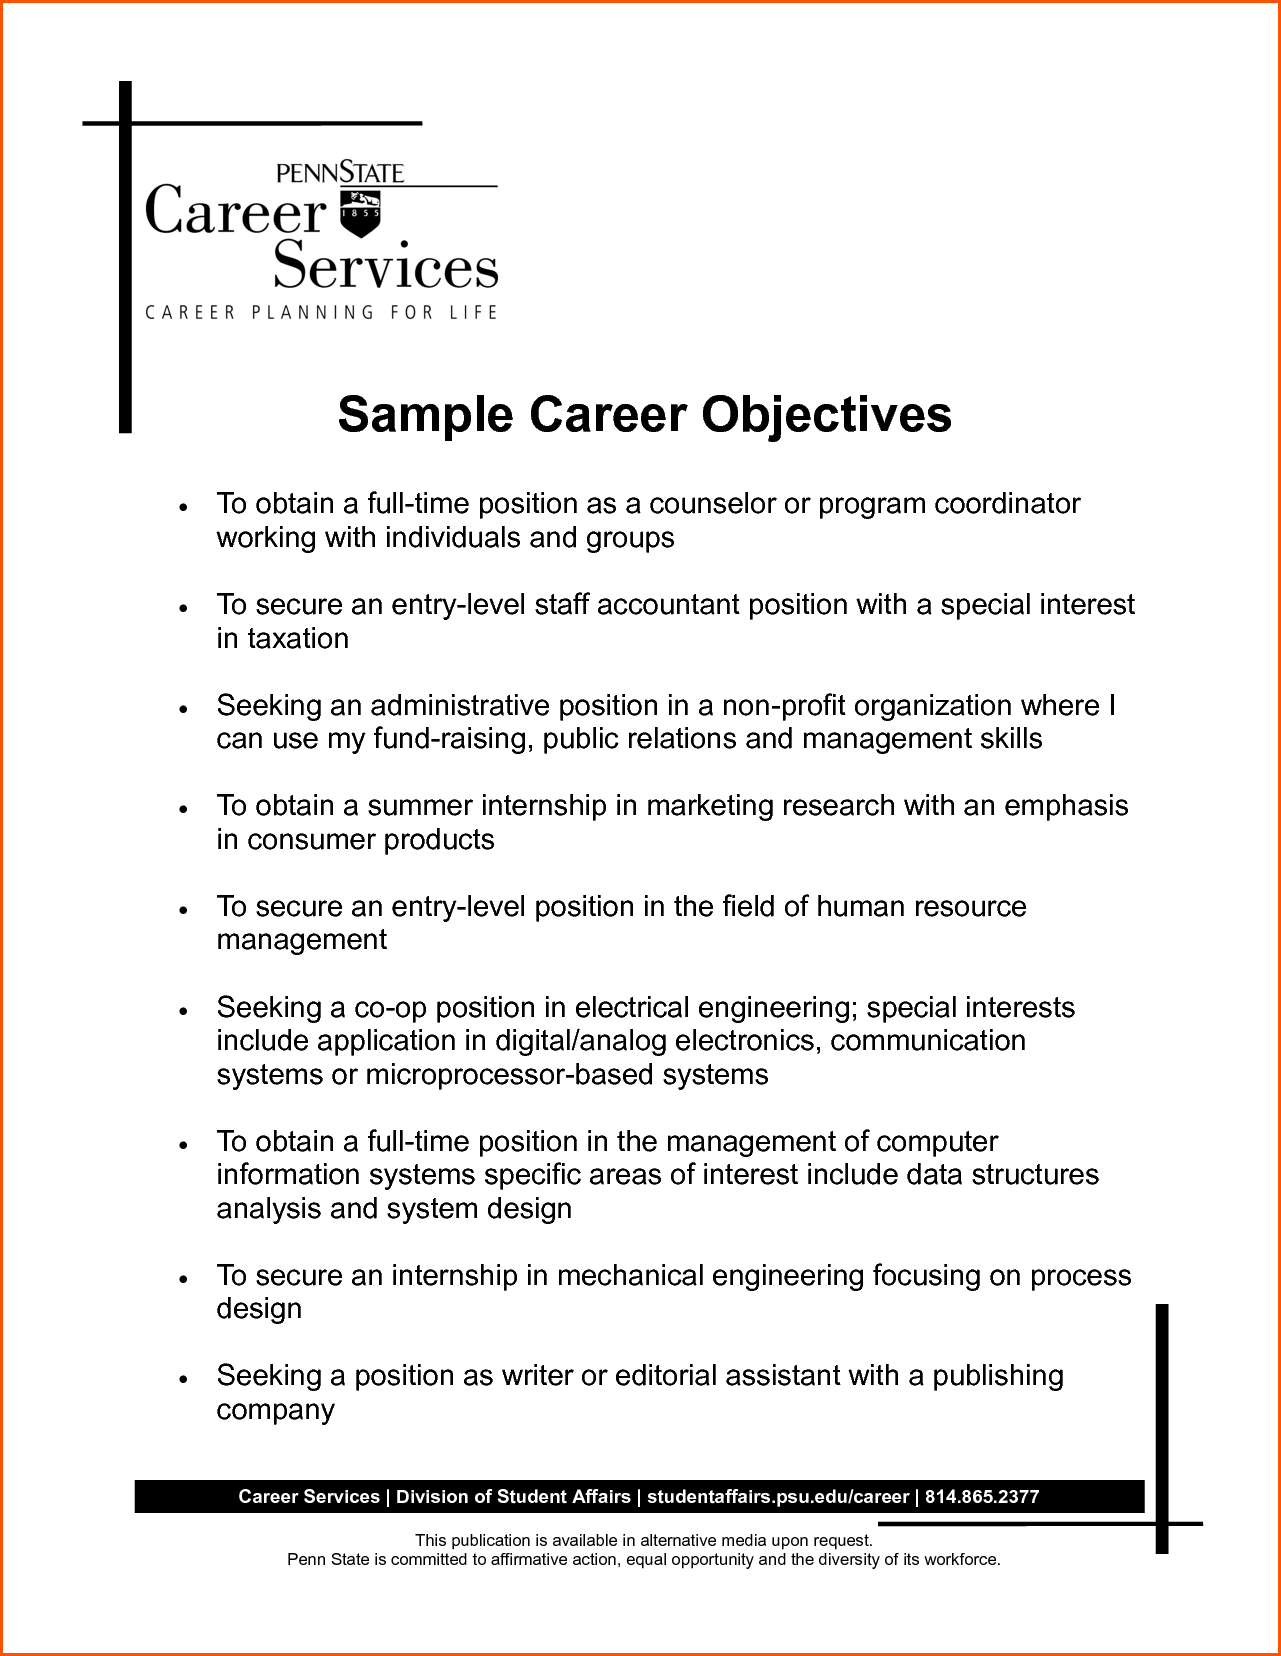 career objective examples for resume denial letter sample catchy d7f0eec9f1897402dcbd943936616945 733242383052871251 write objective for resume - How Do You Write An Objective On A Resume